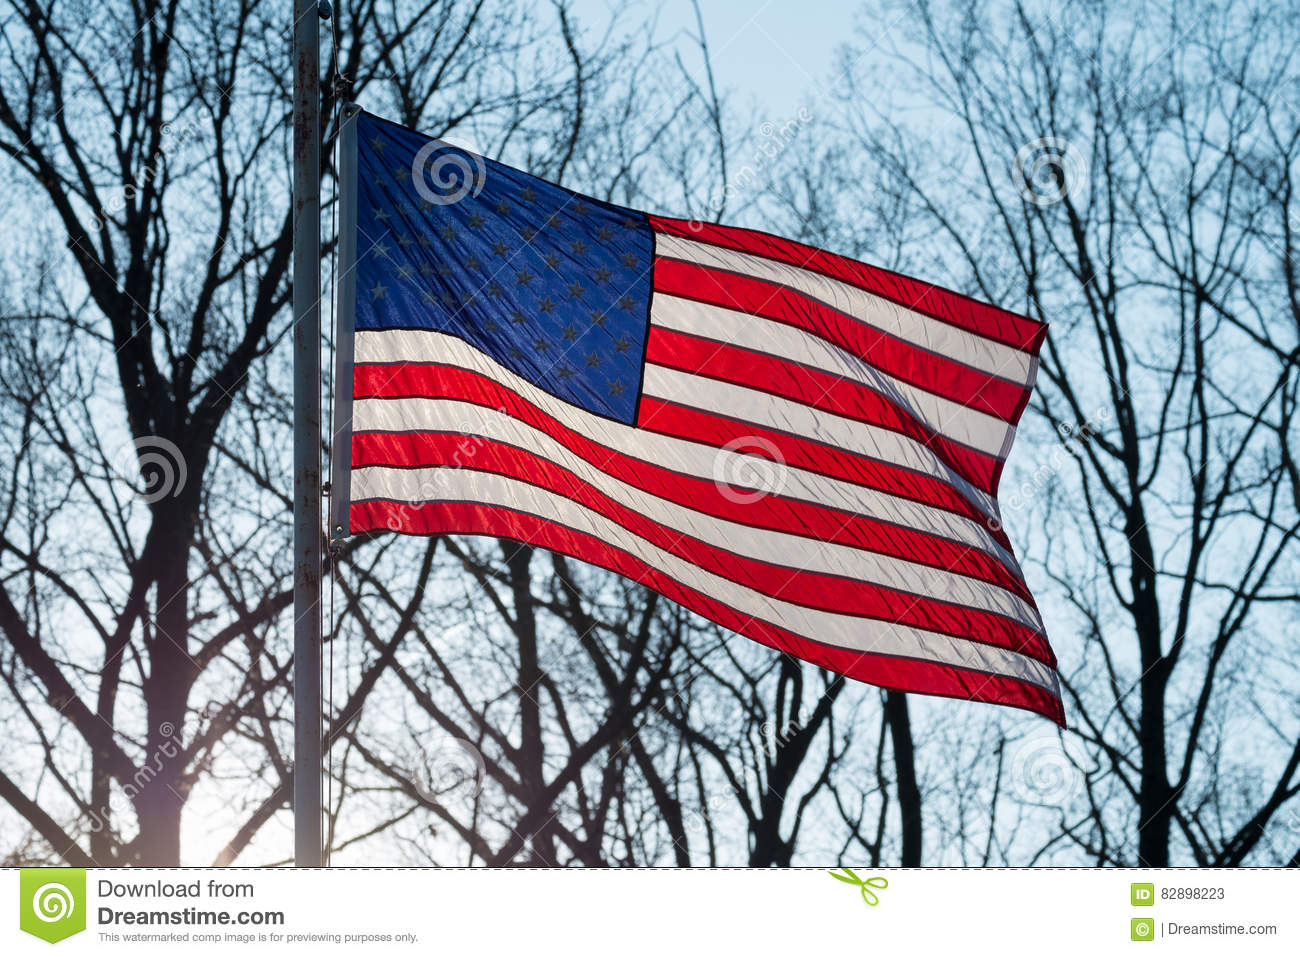 American flag waving in the wind at sunset with trees in the background b72d321655b